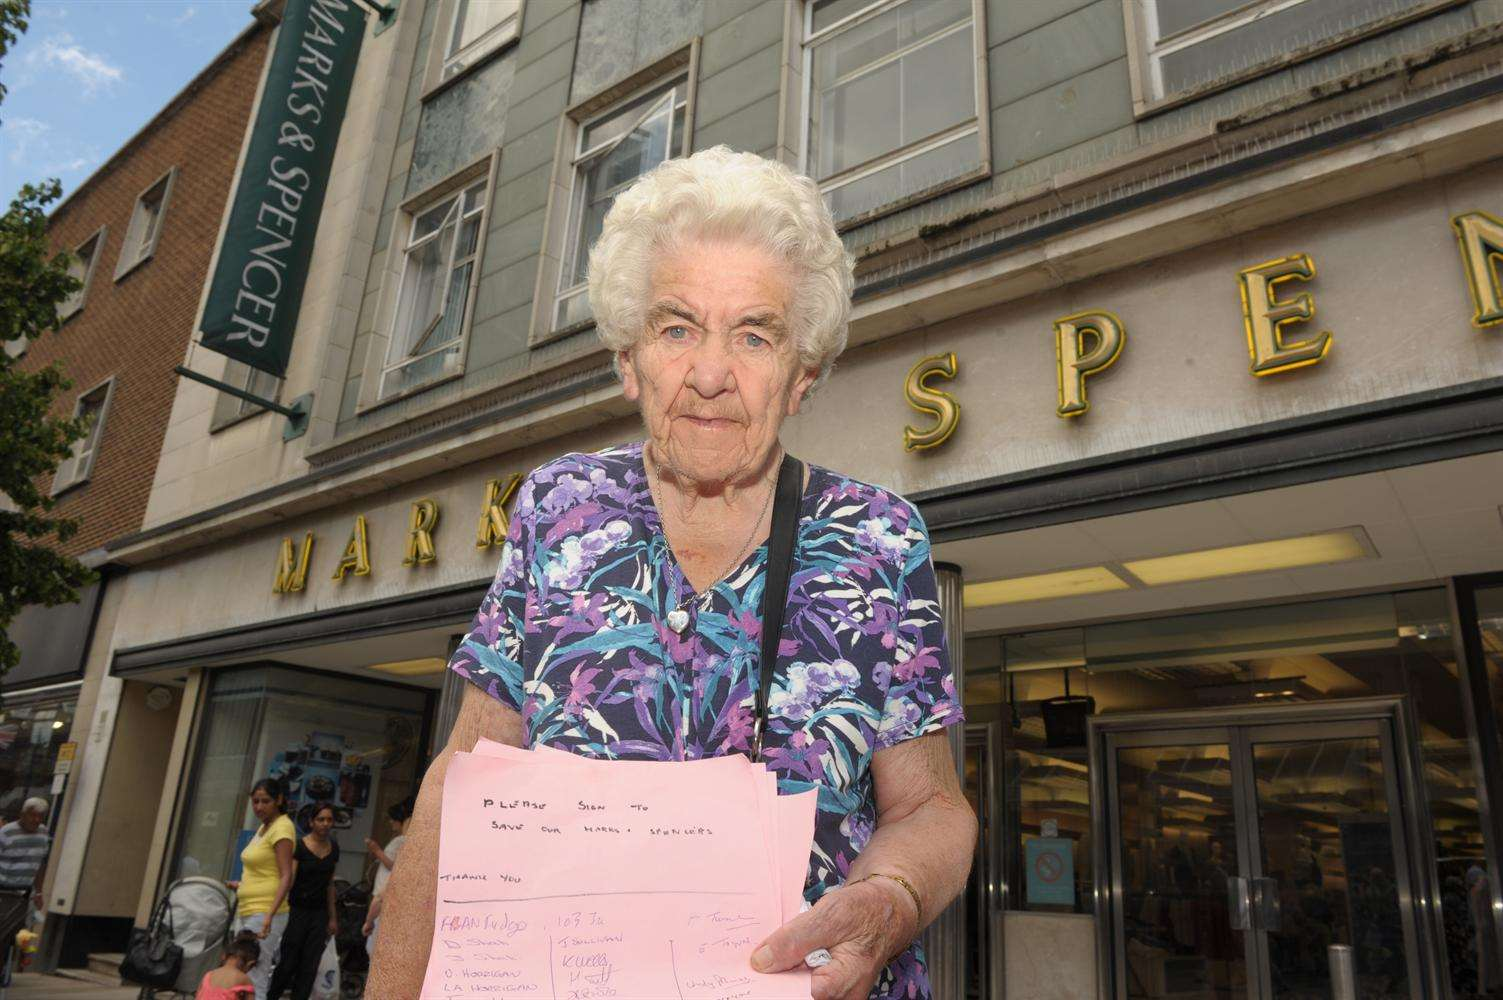 Vera Purll, 93, outside the Marks & Spencer store in Gravesend